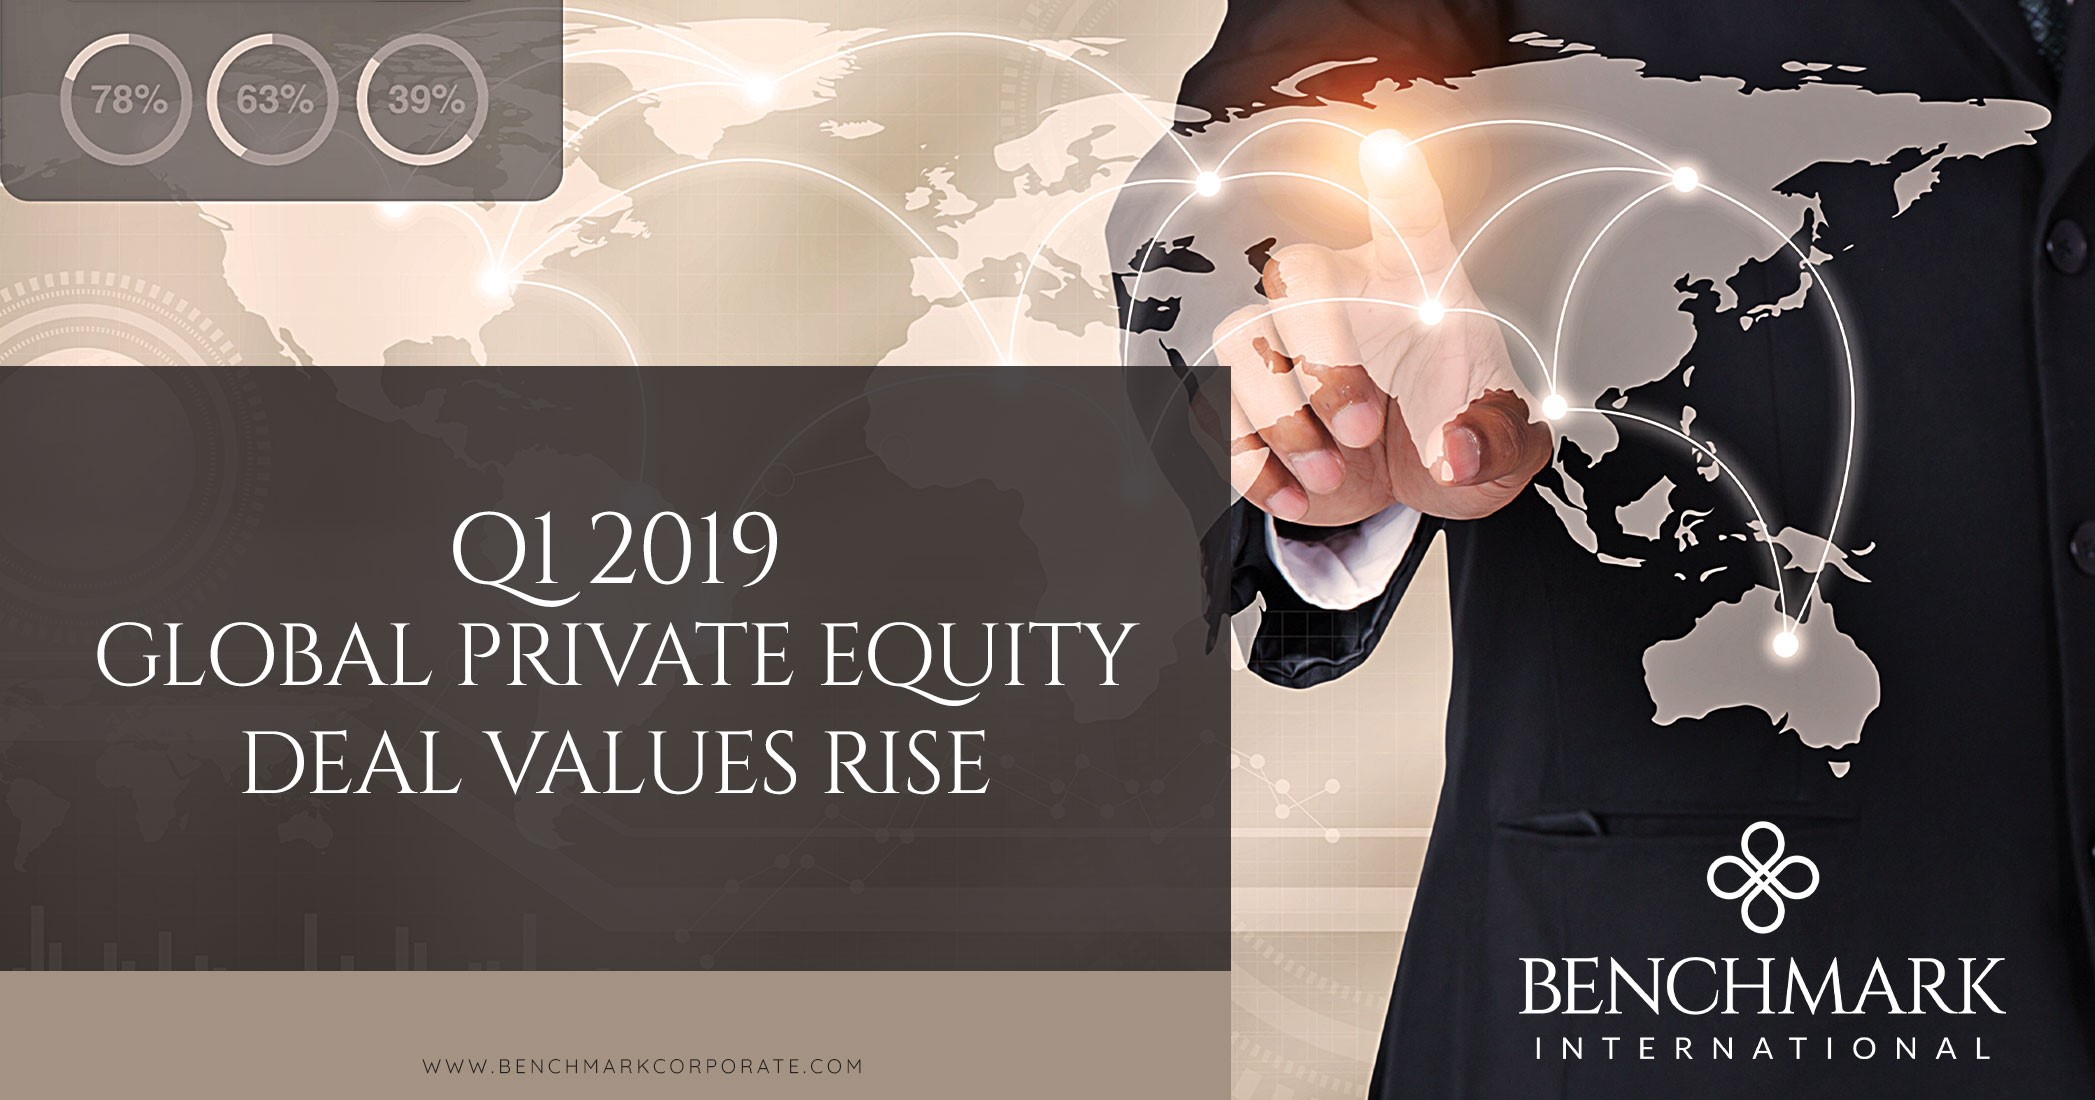 Q1 2019 – Global Private Equity Deal Values Rise